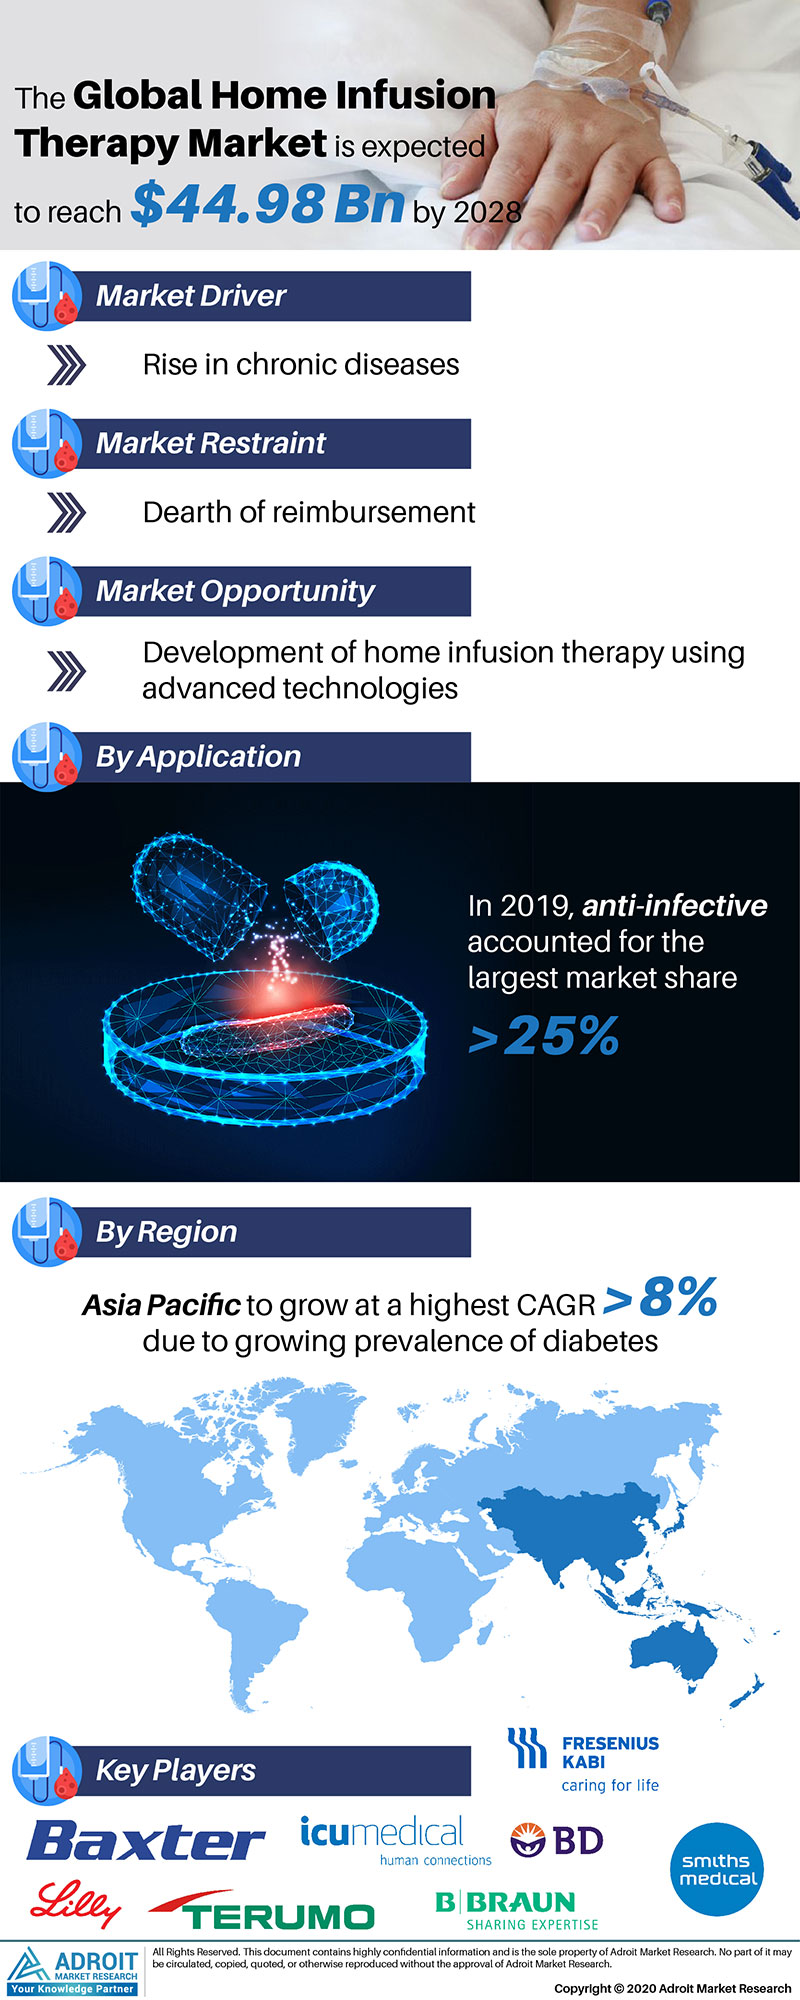 Home Infusion Therapy Market Size 2017 By Application, Product, Region and Forecast 2019 to 2025